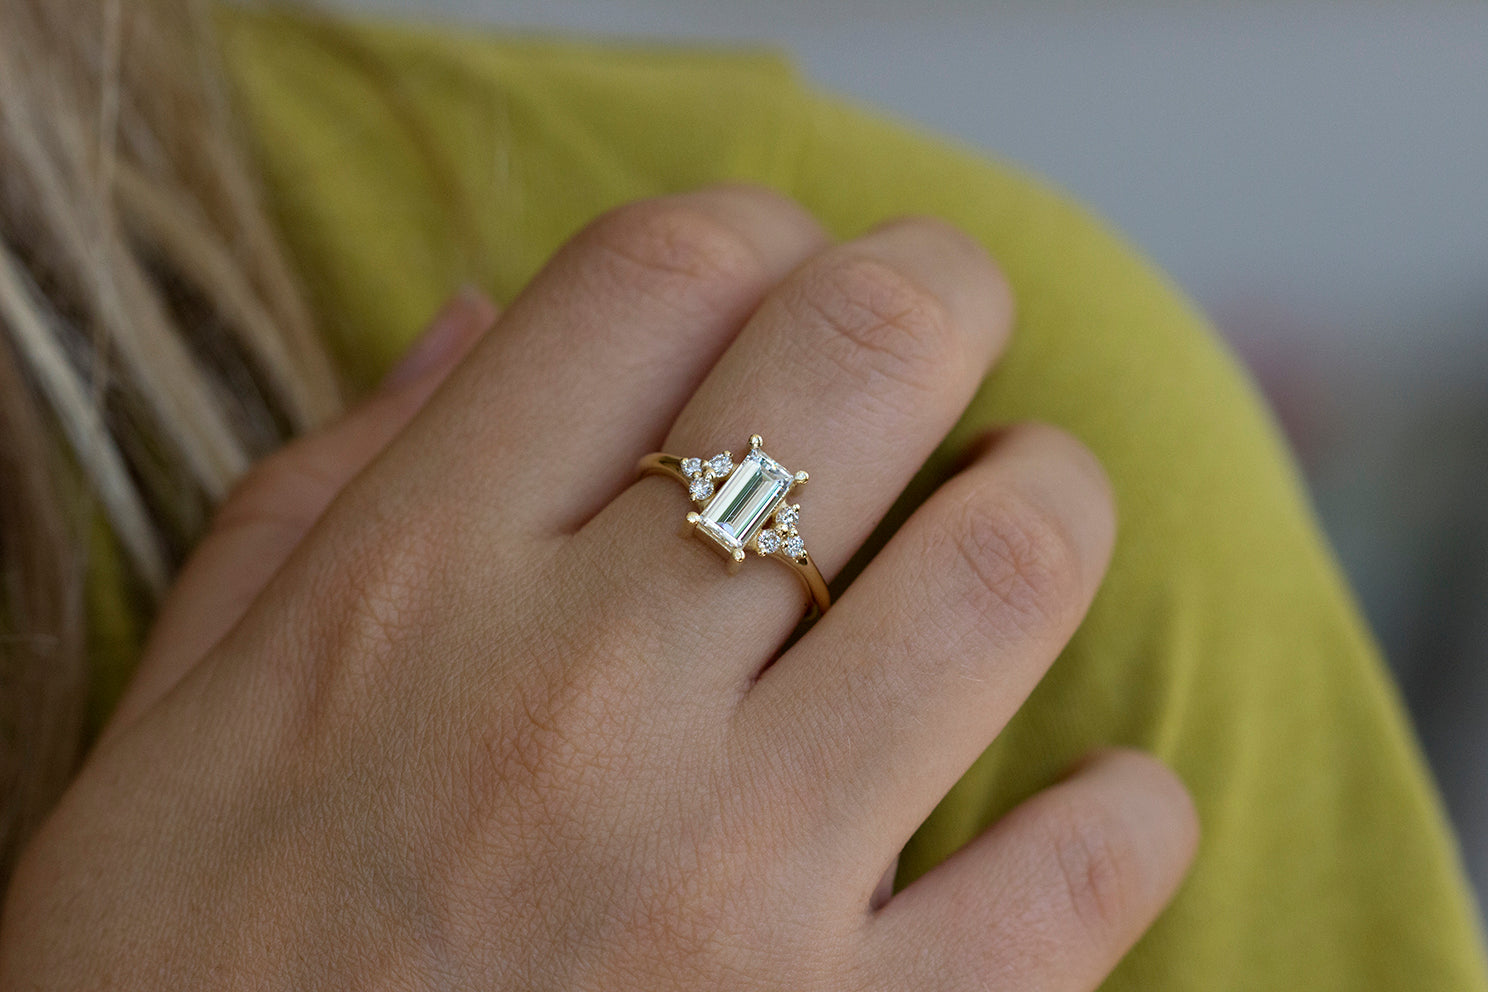 Frontal View Of One Carat Baguette Diamond Engagement Ring On Hand